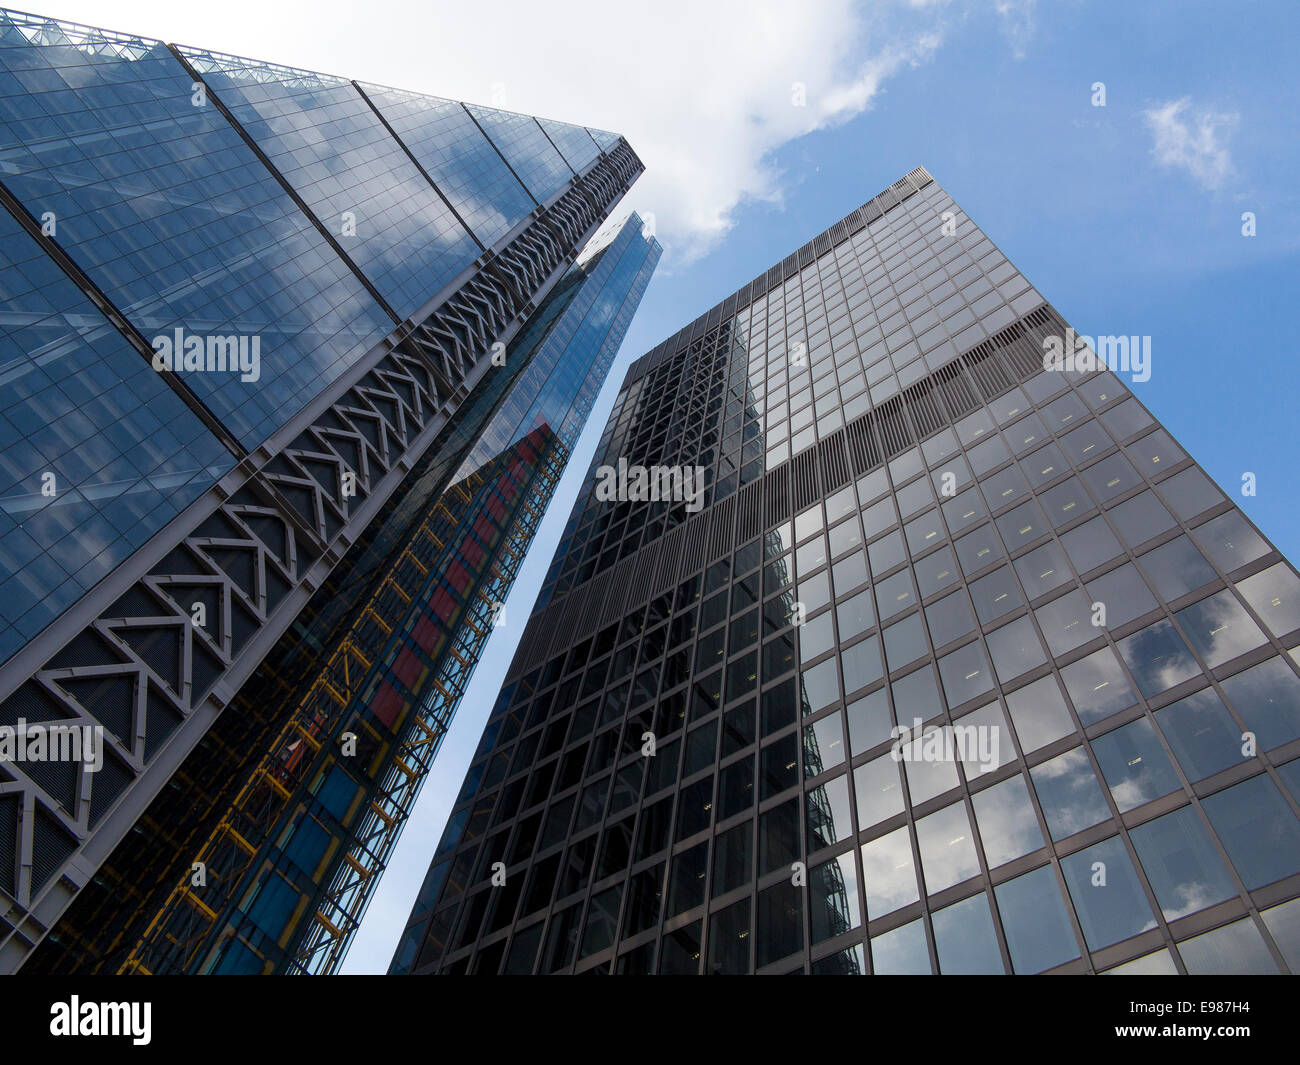 The Leadenhall Building in the City of London, nicknamed the Cheesegrater, stands besides the Aviva Tower - Stock Image